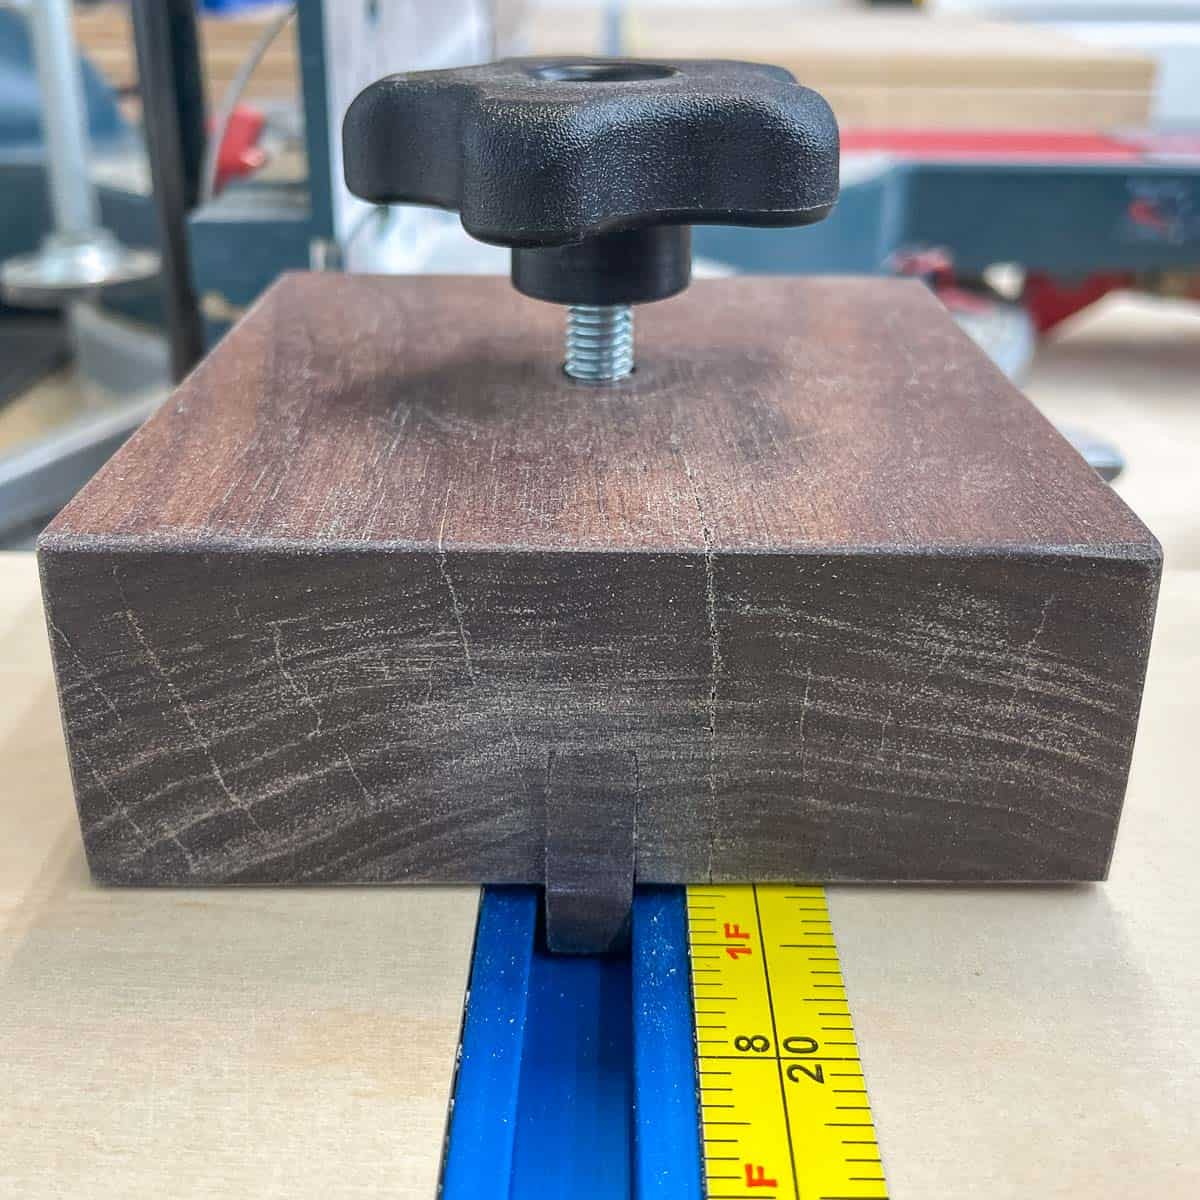 t track miter saw stop block in track